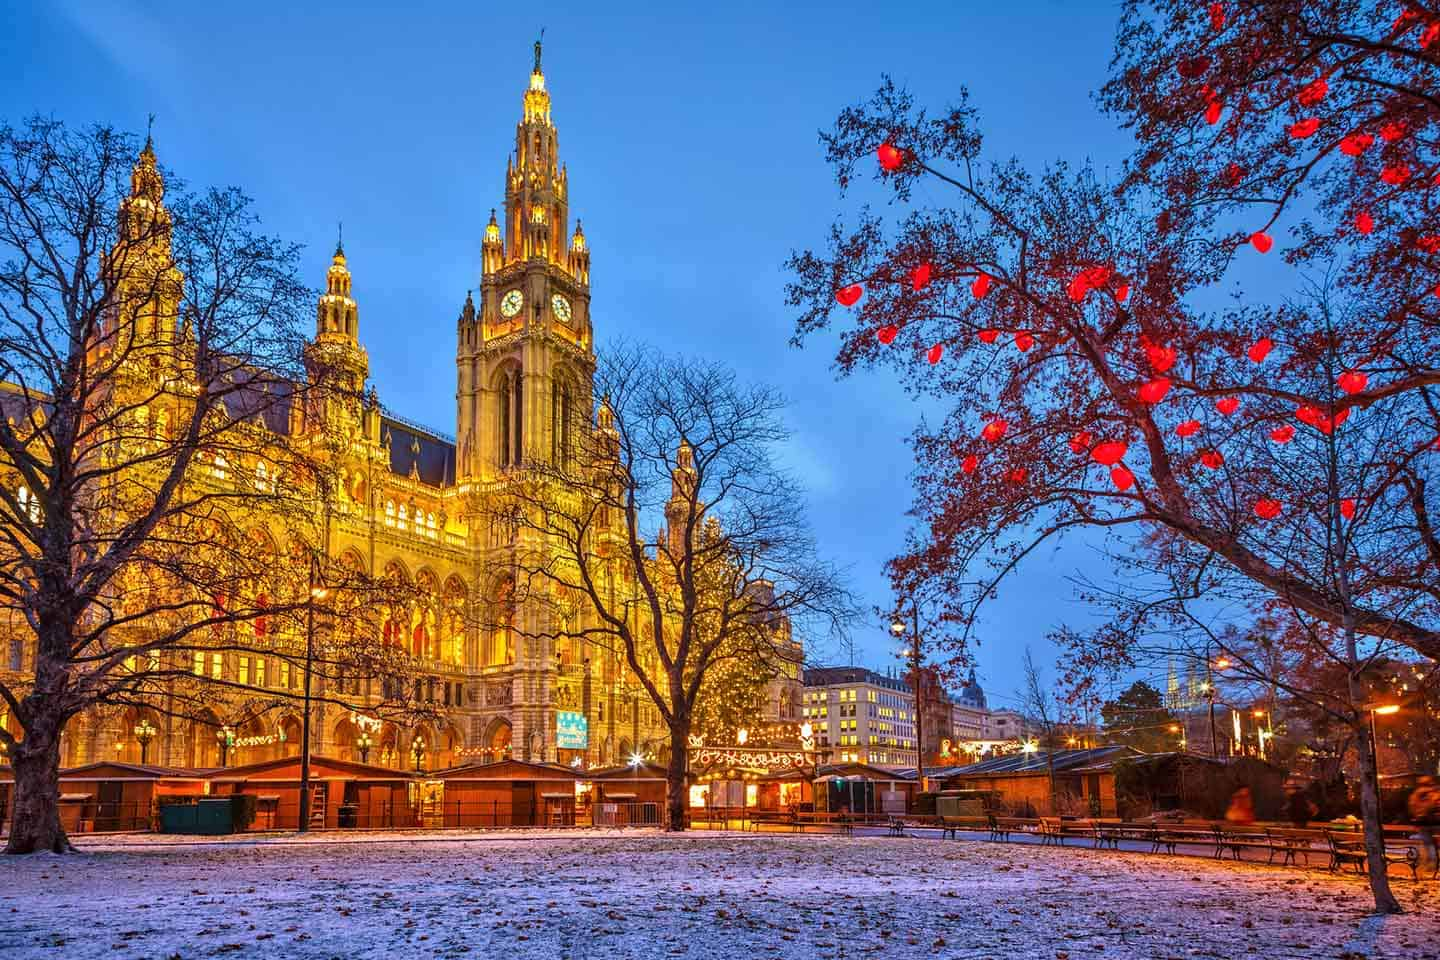 Image of Vienna at Christmas